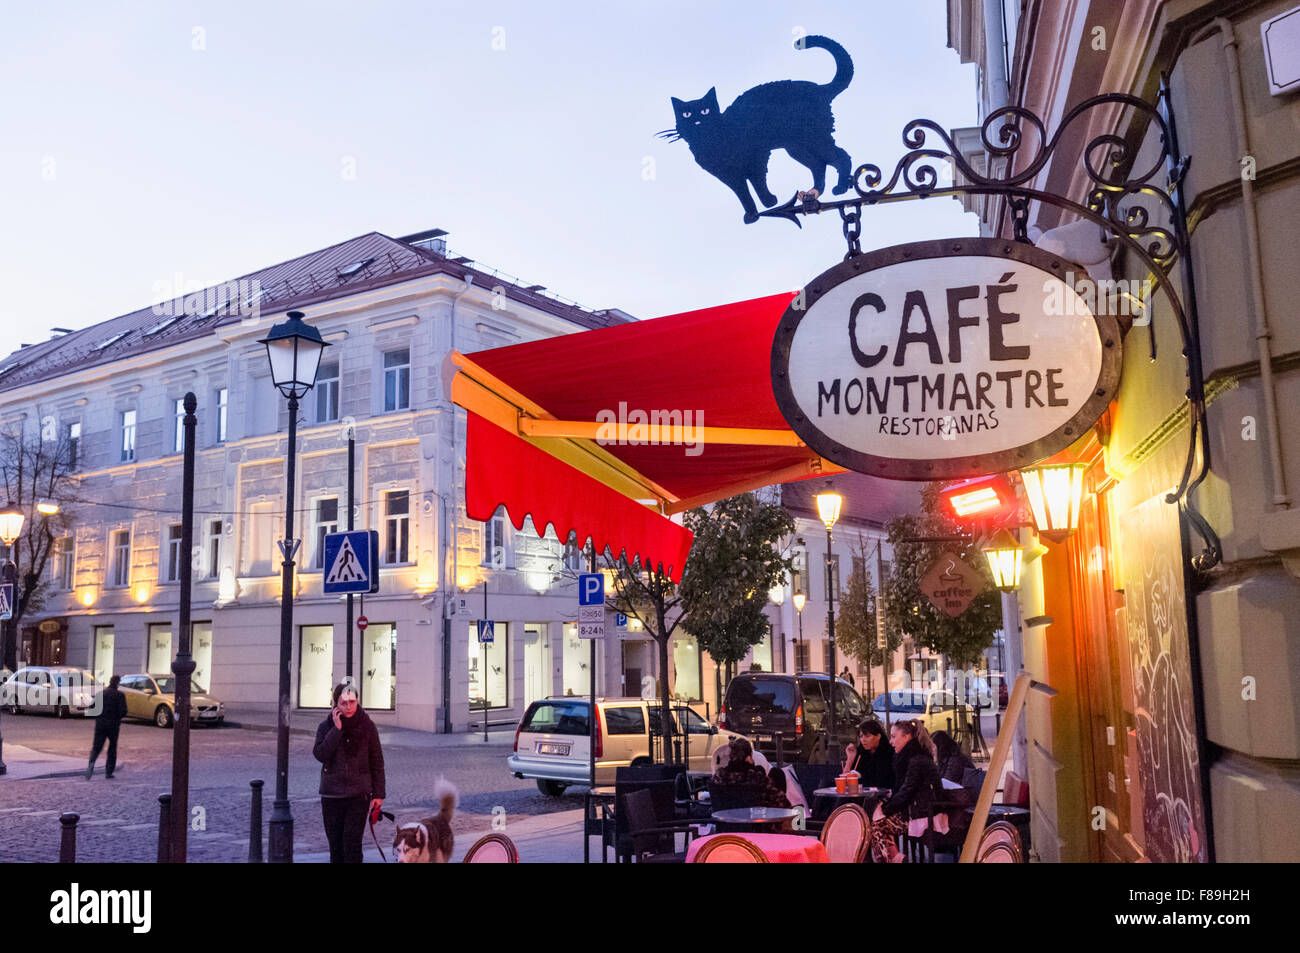 Cafe restaurant in Vilnius, Lithuania, Europe - Stock Image